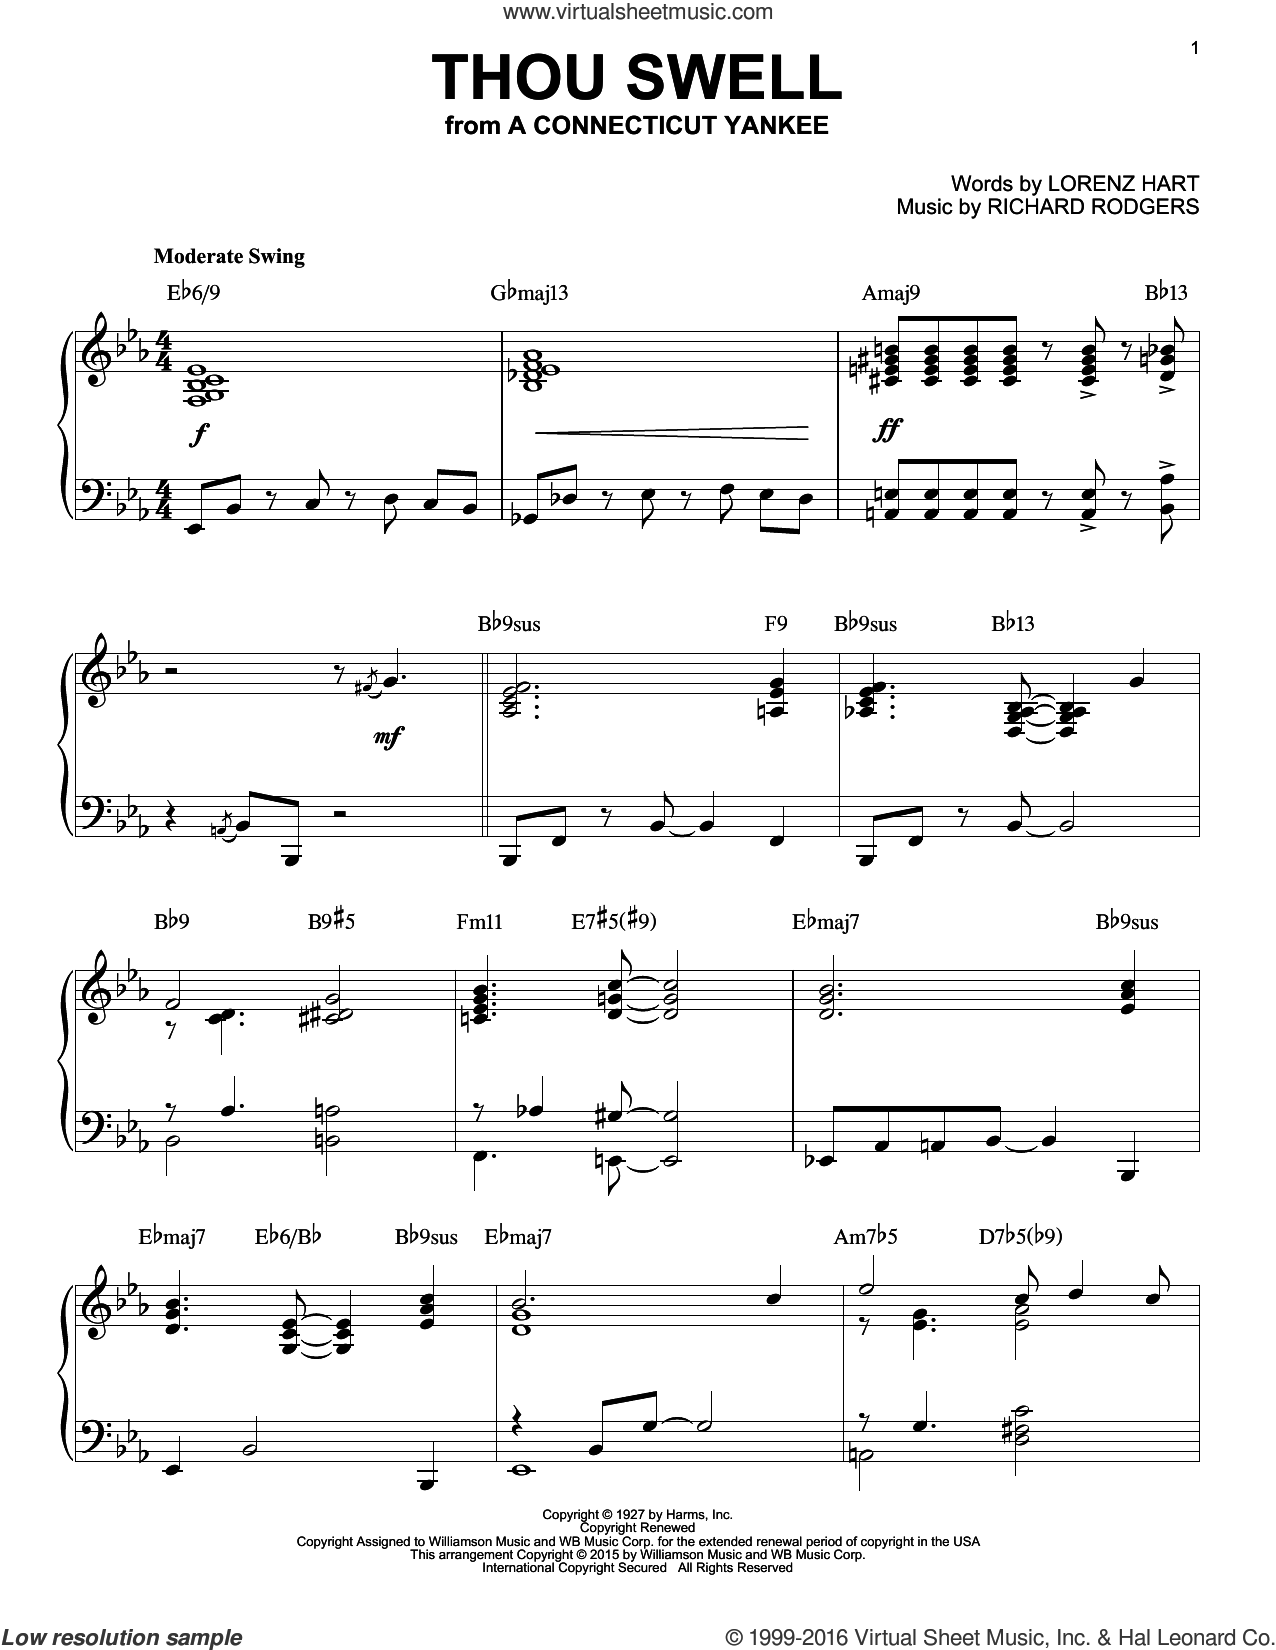 Thou Swell sheet music for piano solo by Rodgers & Hart, Lorenz Hart and Richard Rodgers, intermediate skill level